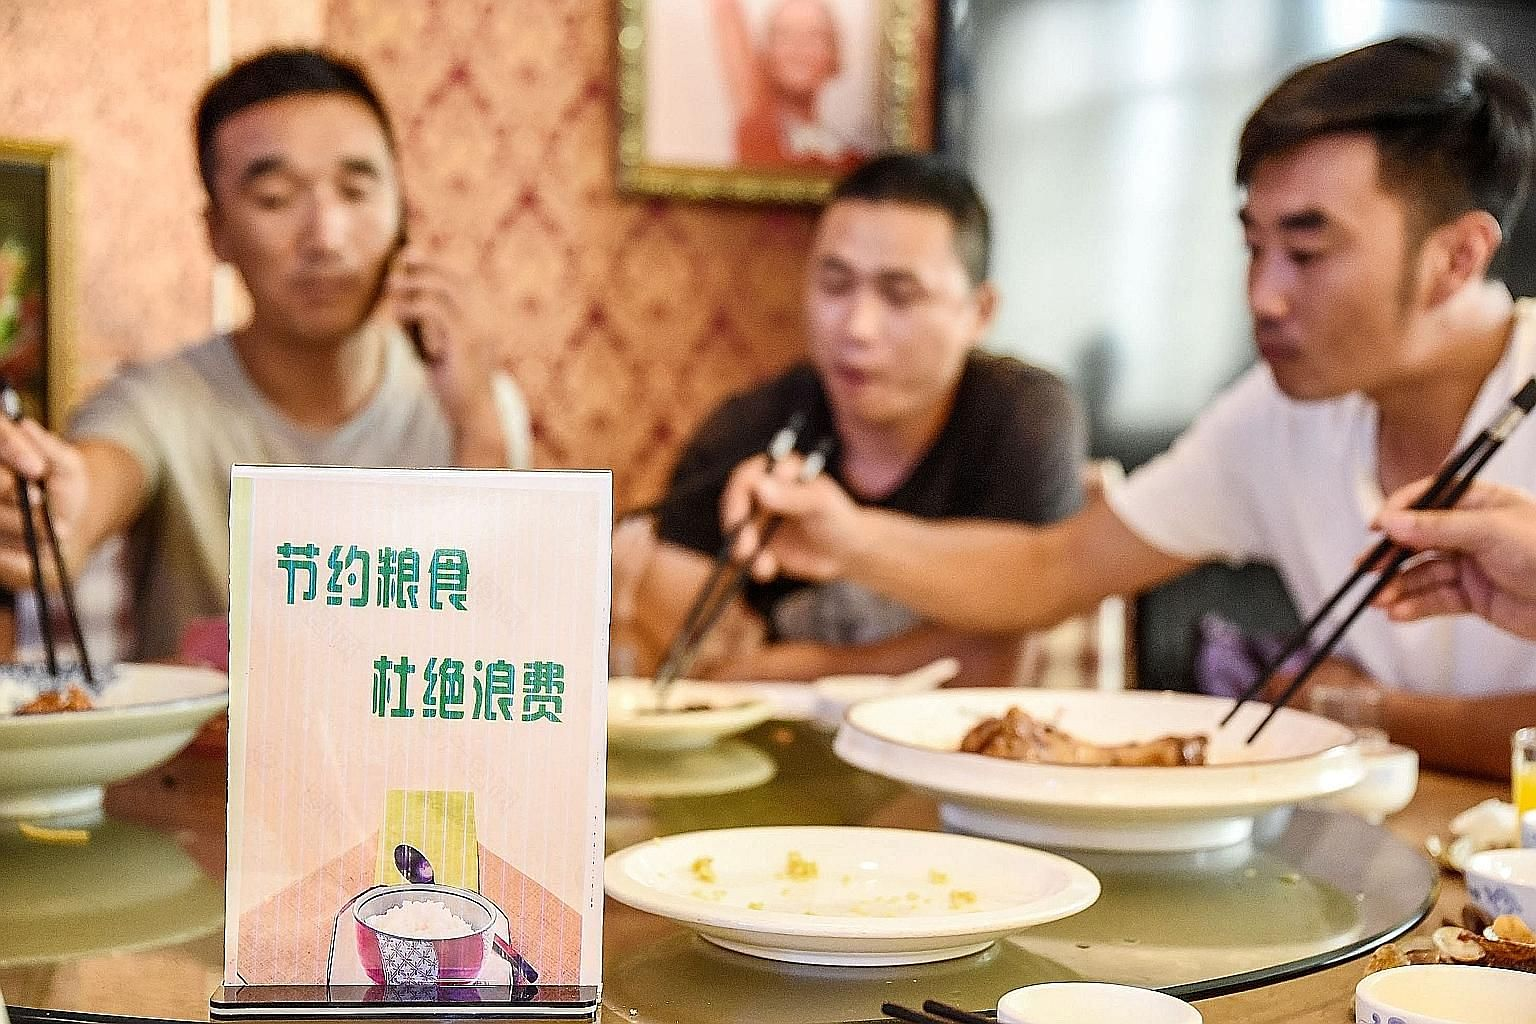 A sign encouraging people not to waste food displayed at a restaurant in Handan, Hebei province, last week. The average Chinese diner throws away 93g of food per meal when eating out, according to a study. This is about 11.7 per cent of his meal. PHO